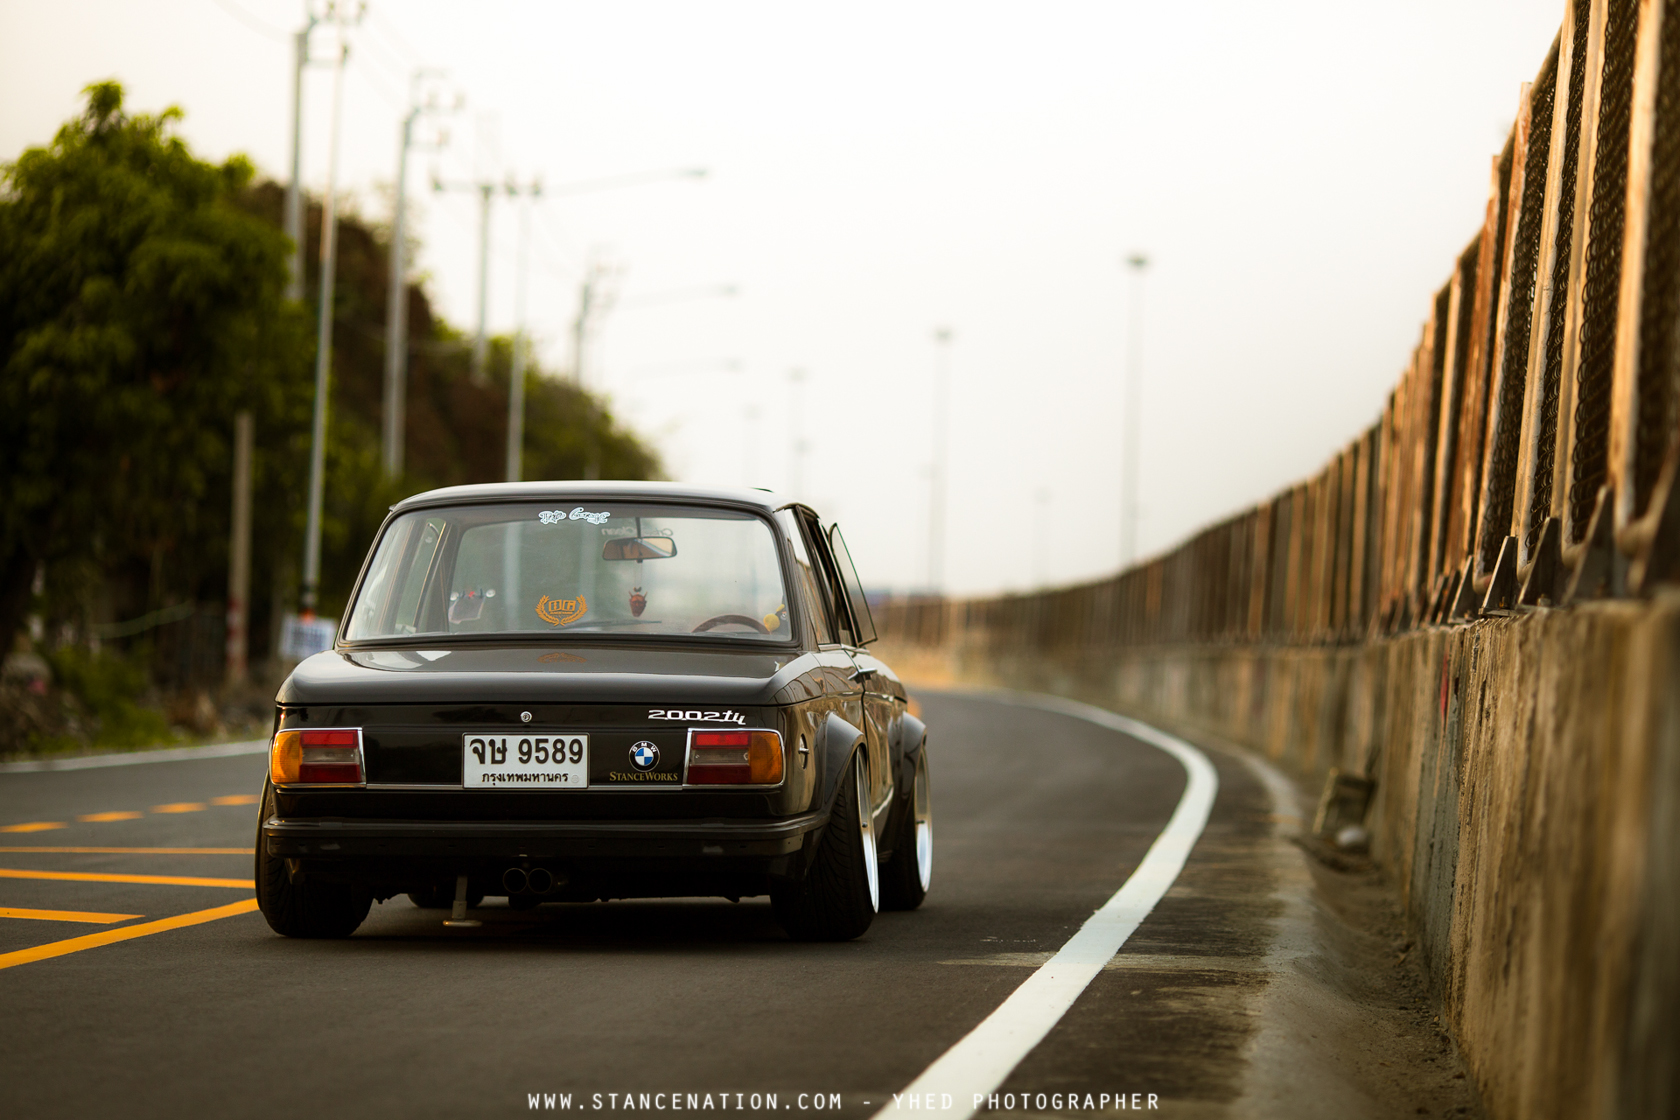 BMW 2002 Stance Nation